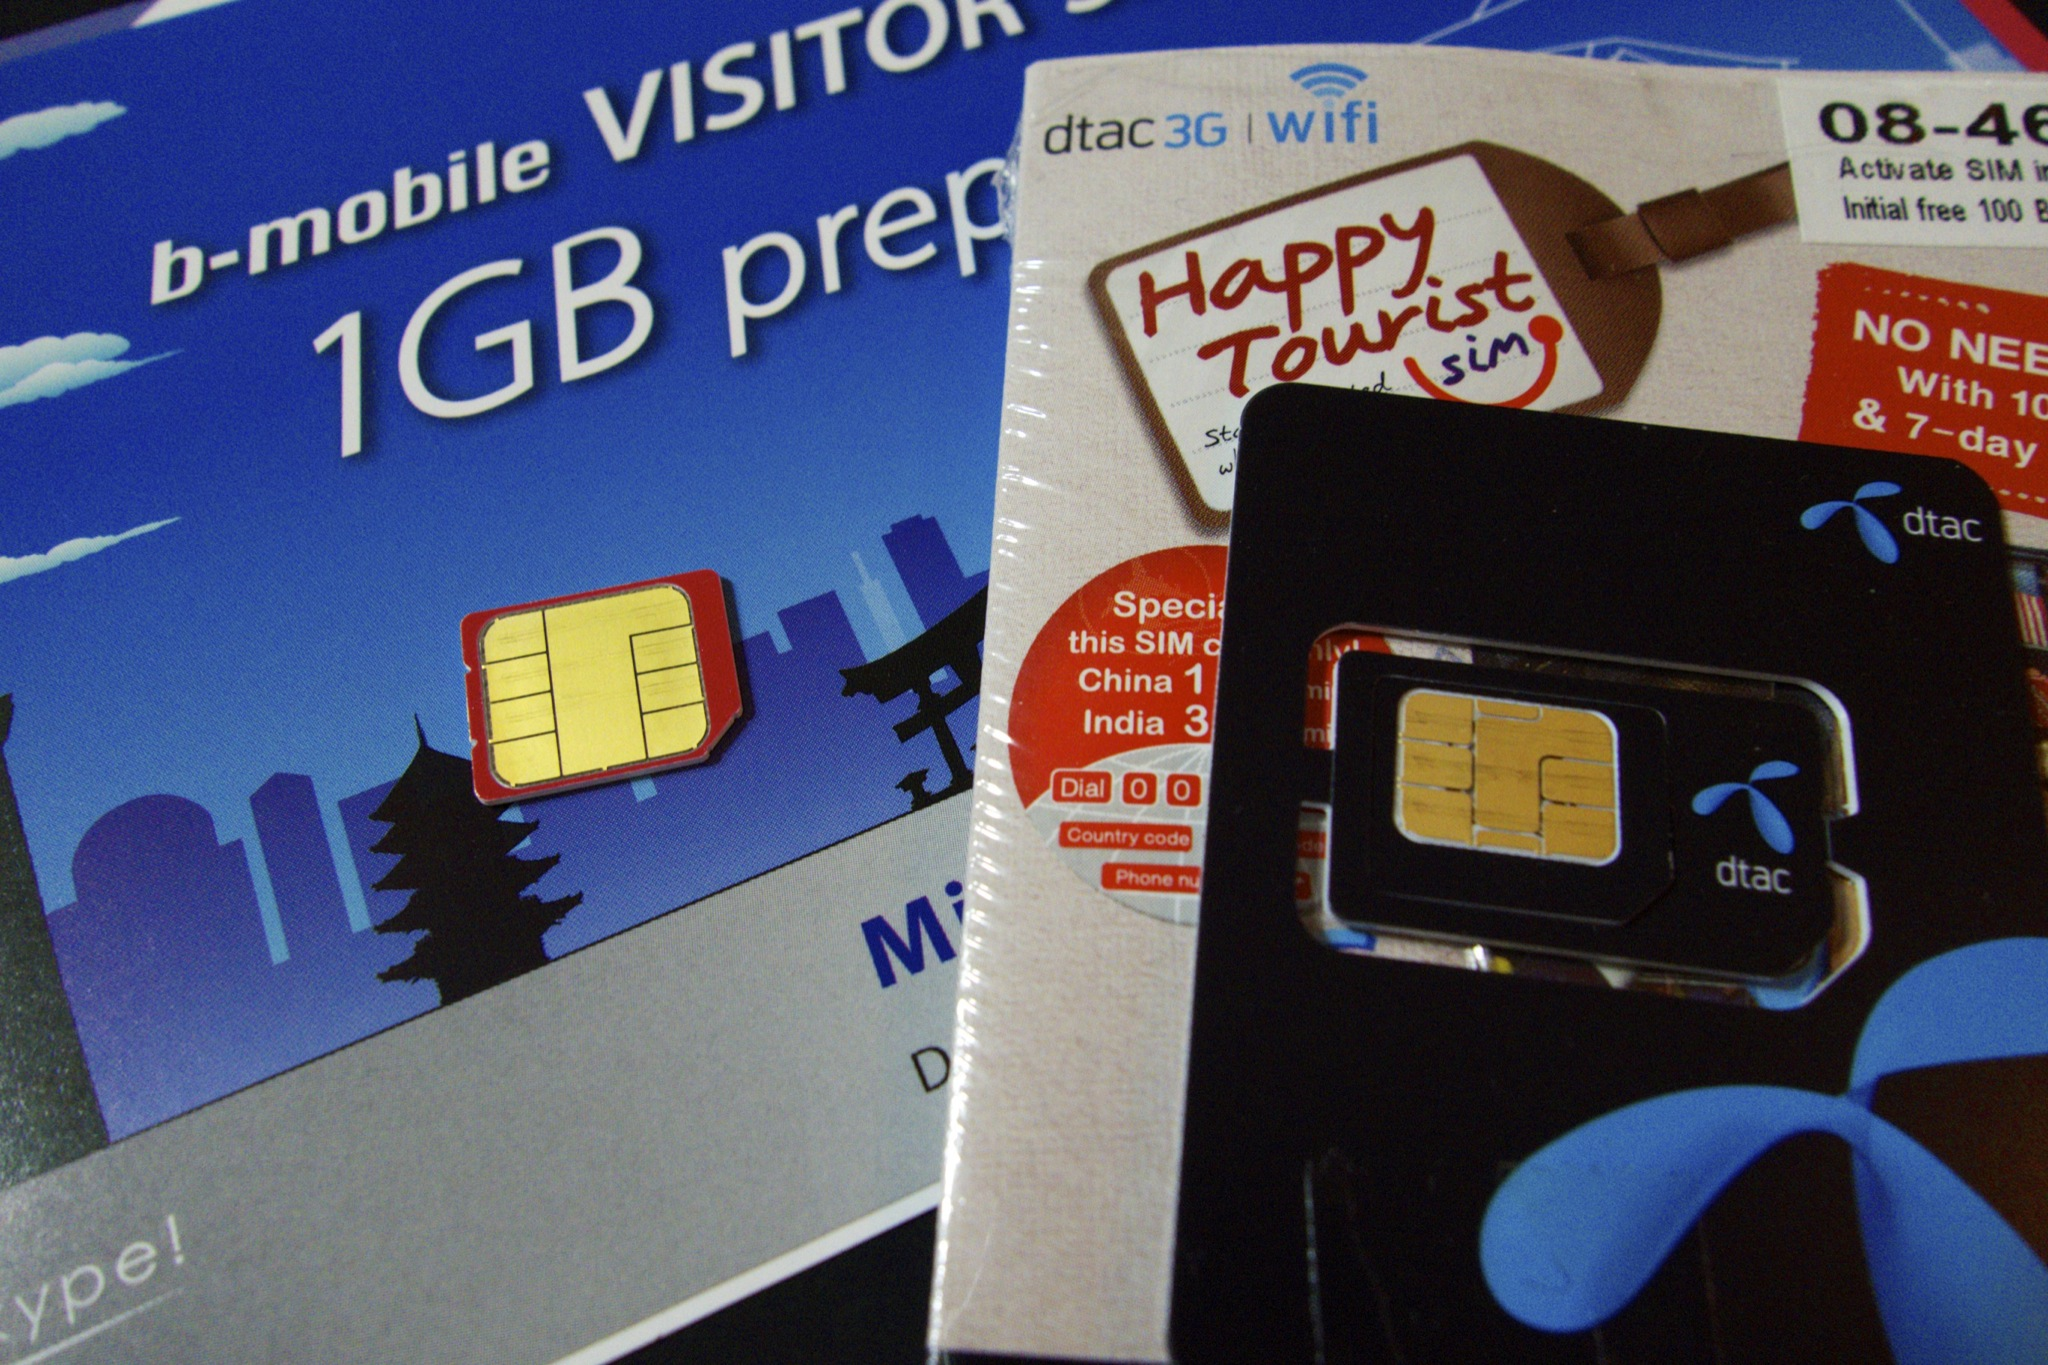 Travel With Prepaid Local SIM Better